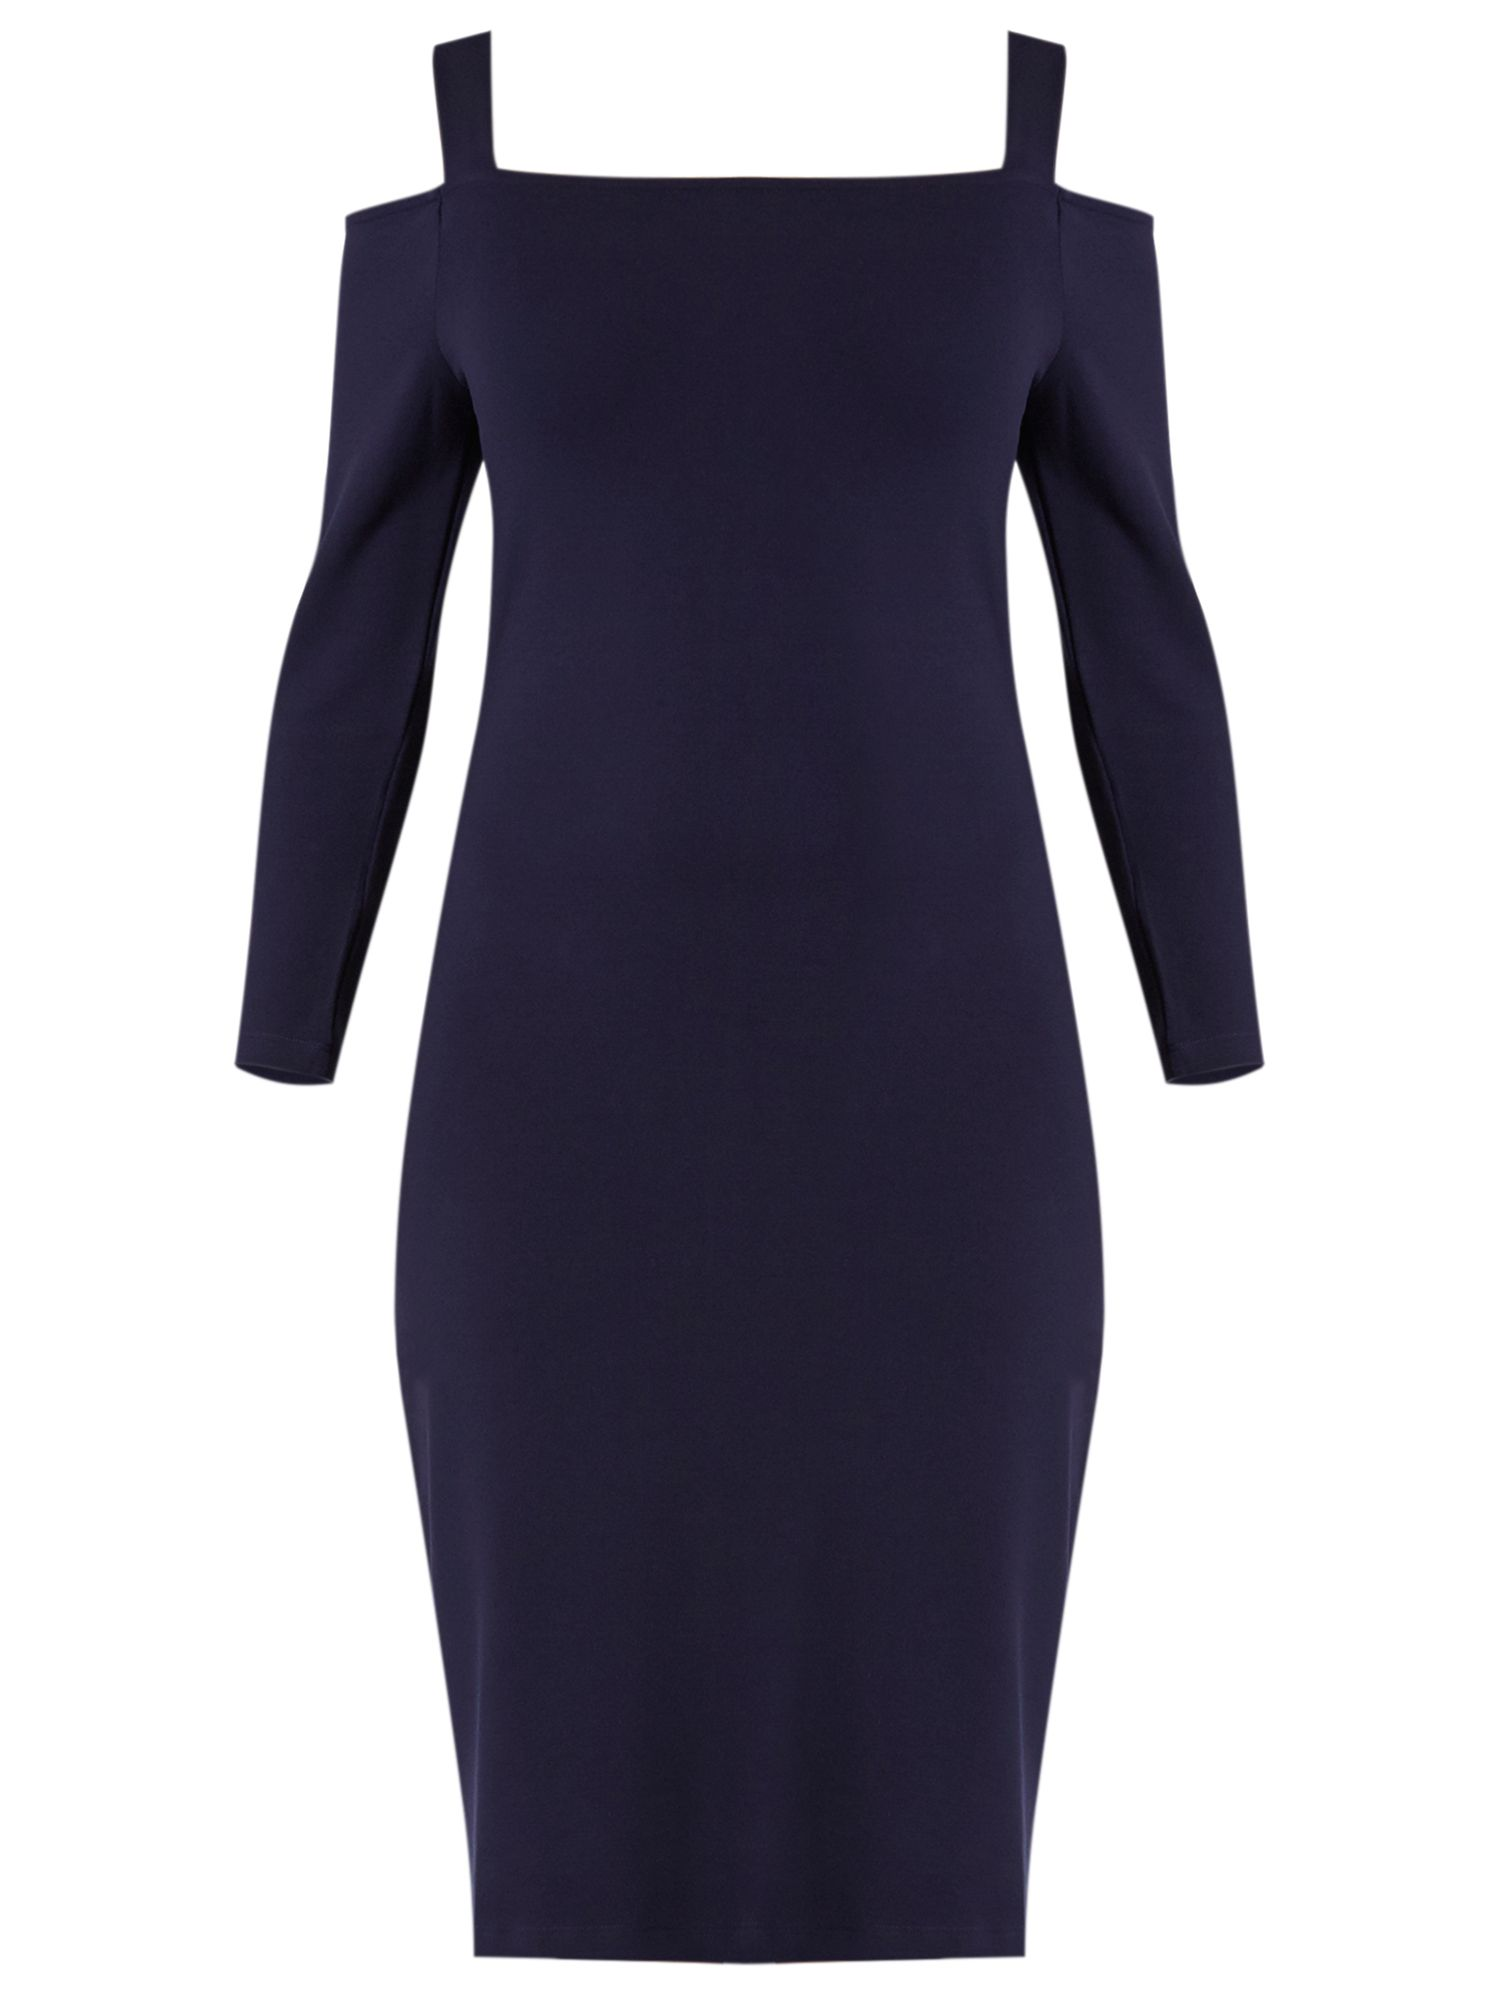 Helen McAlinden Eleanor Dress, Blue